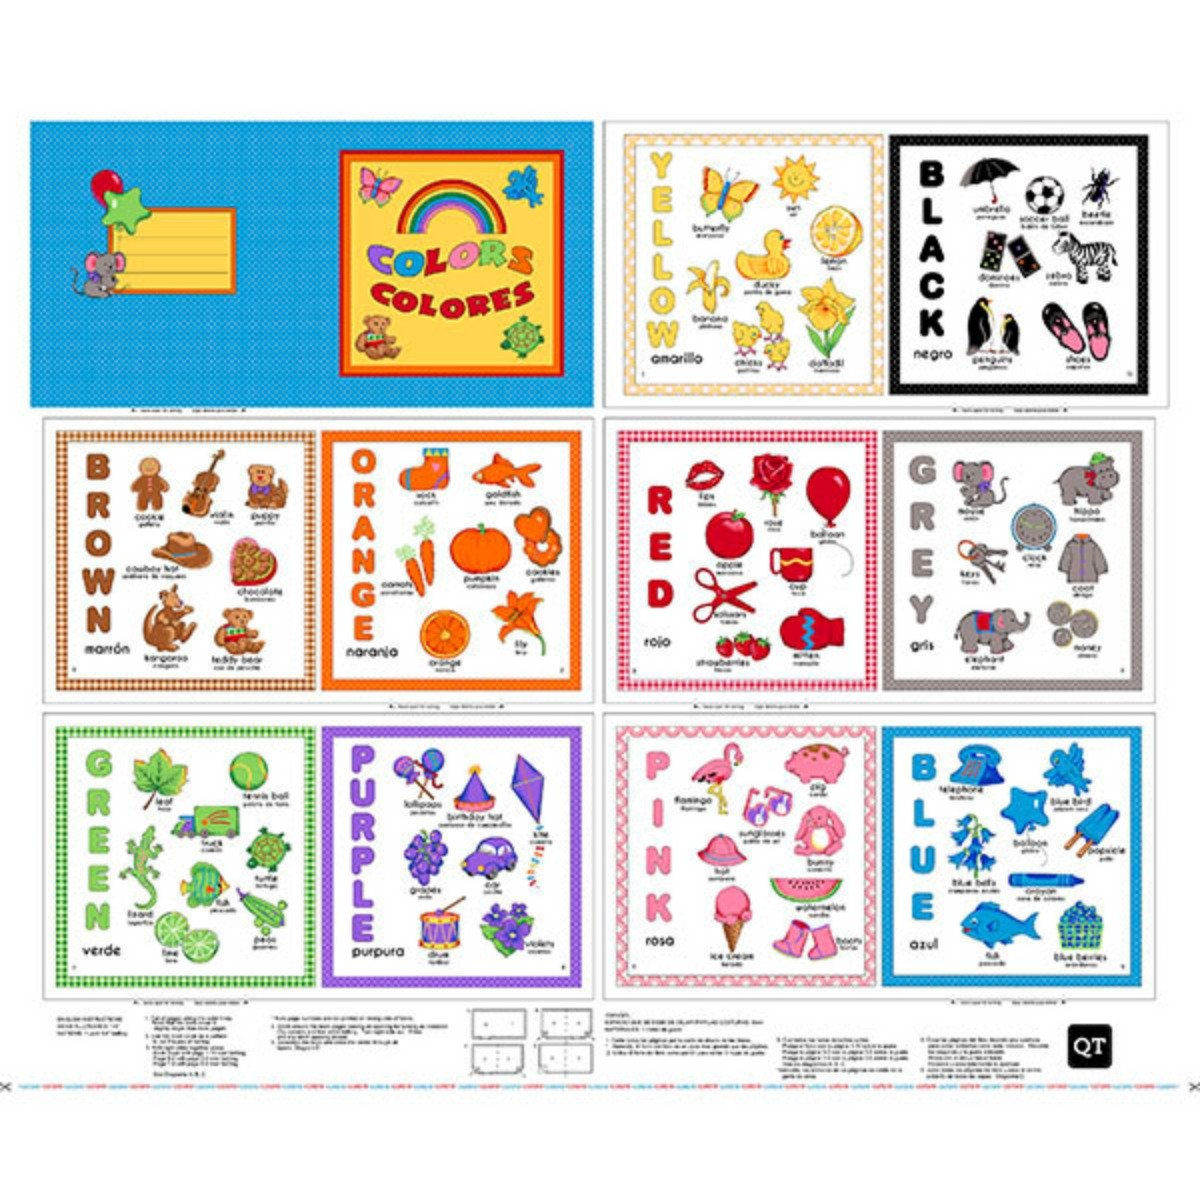 Sew & Go Children's Cloth Book Panels of Colors To Sew